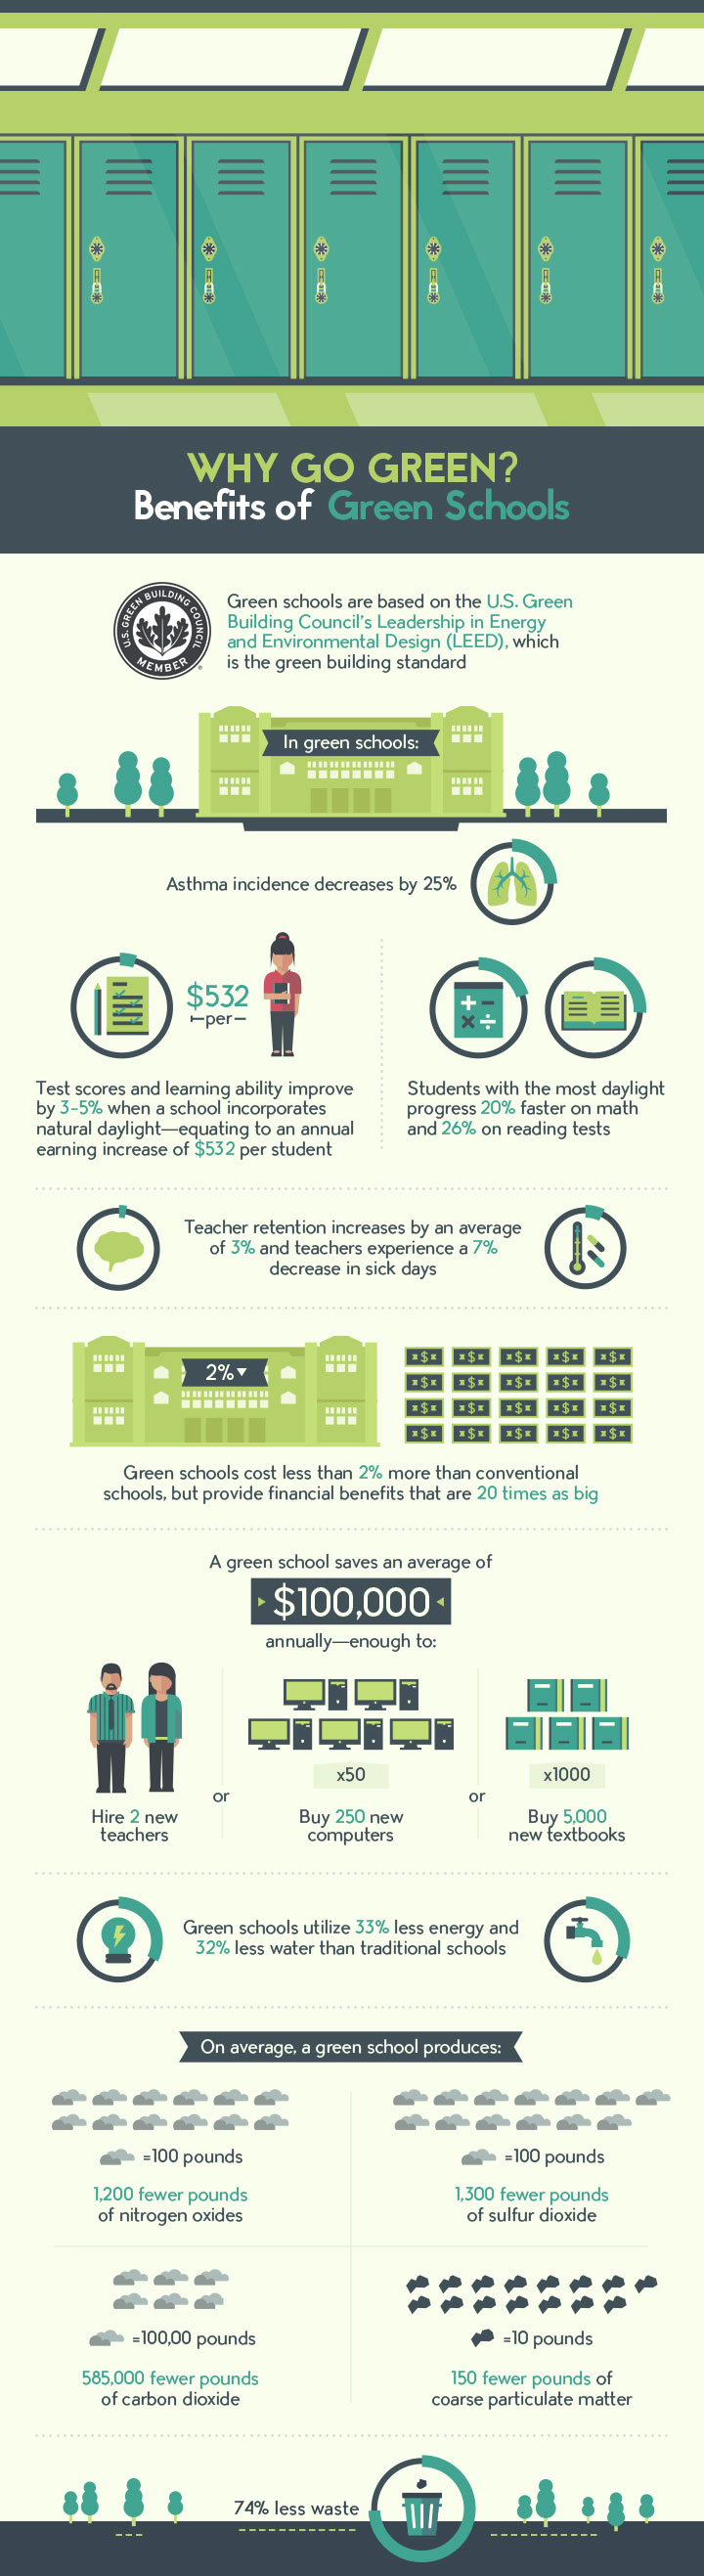 10 Ways to Green Your School #ecofriendly #greenliving